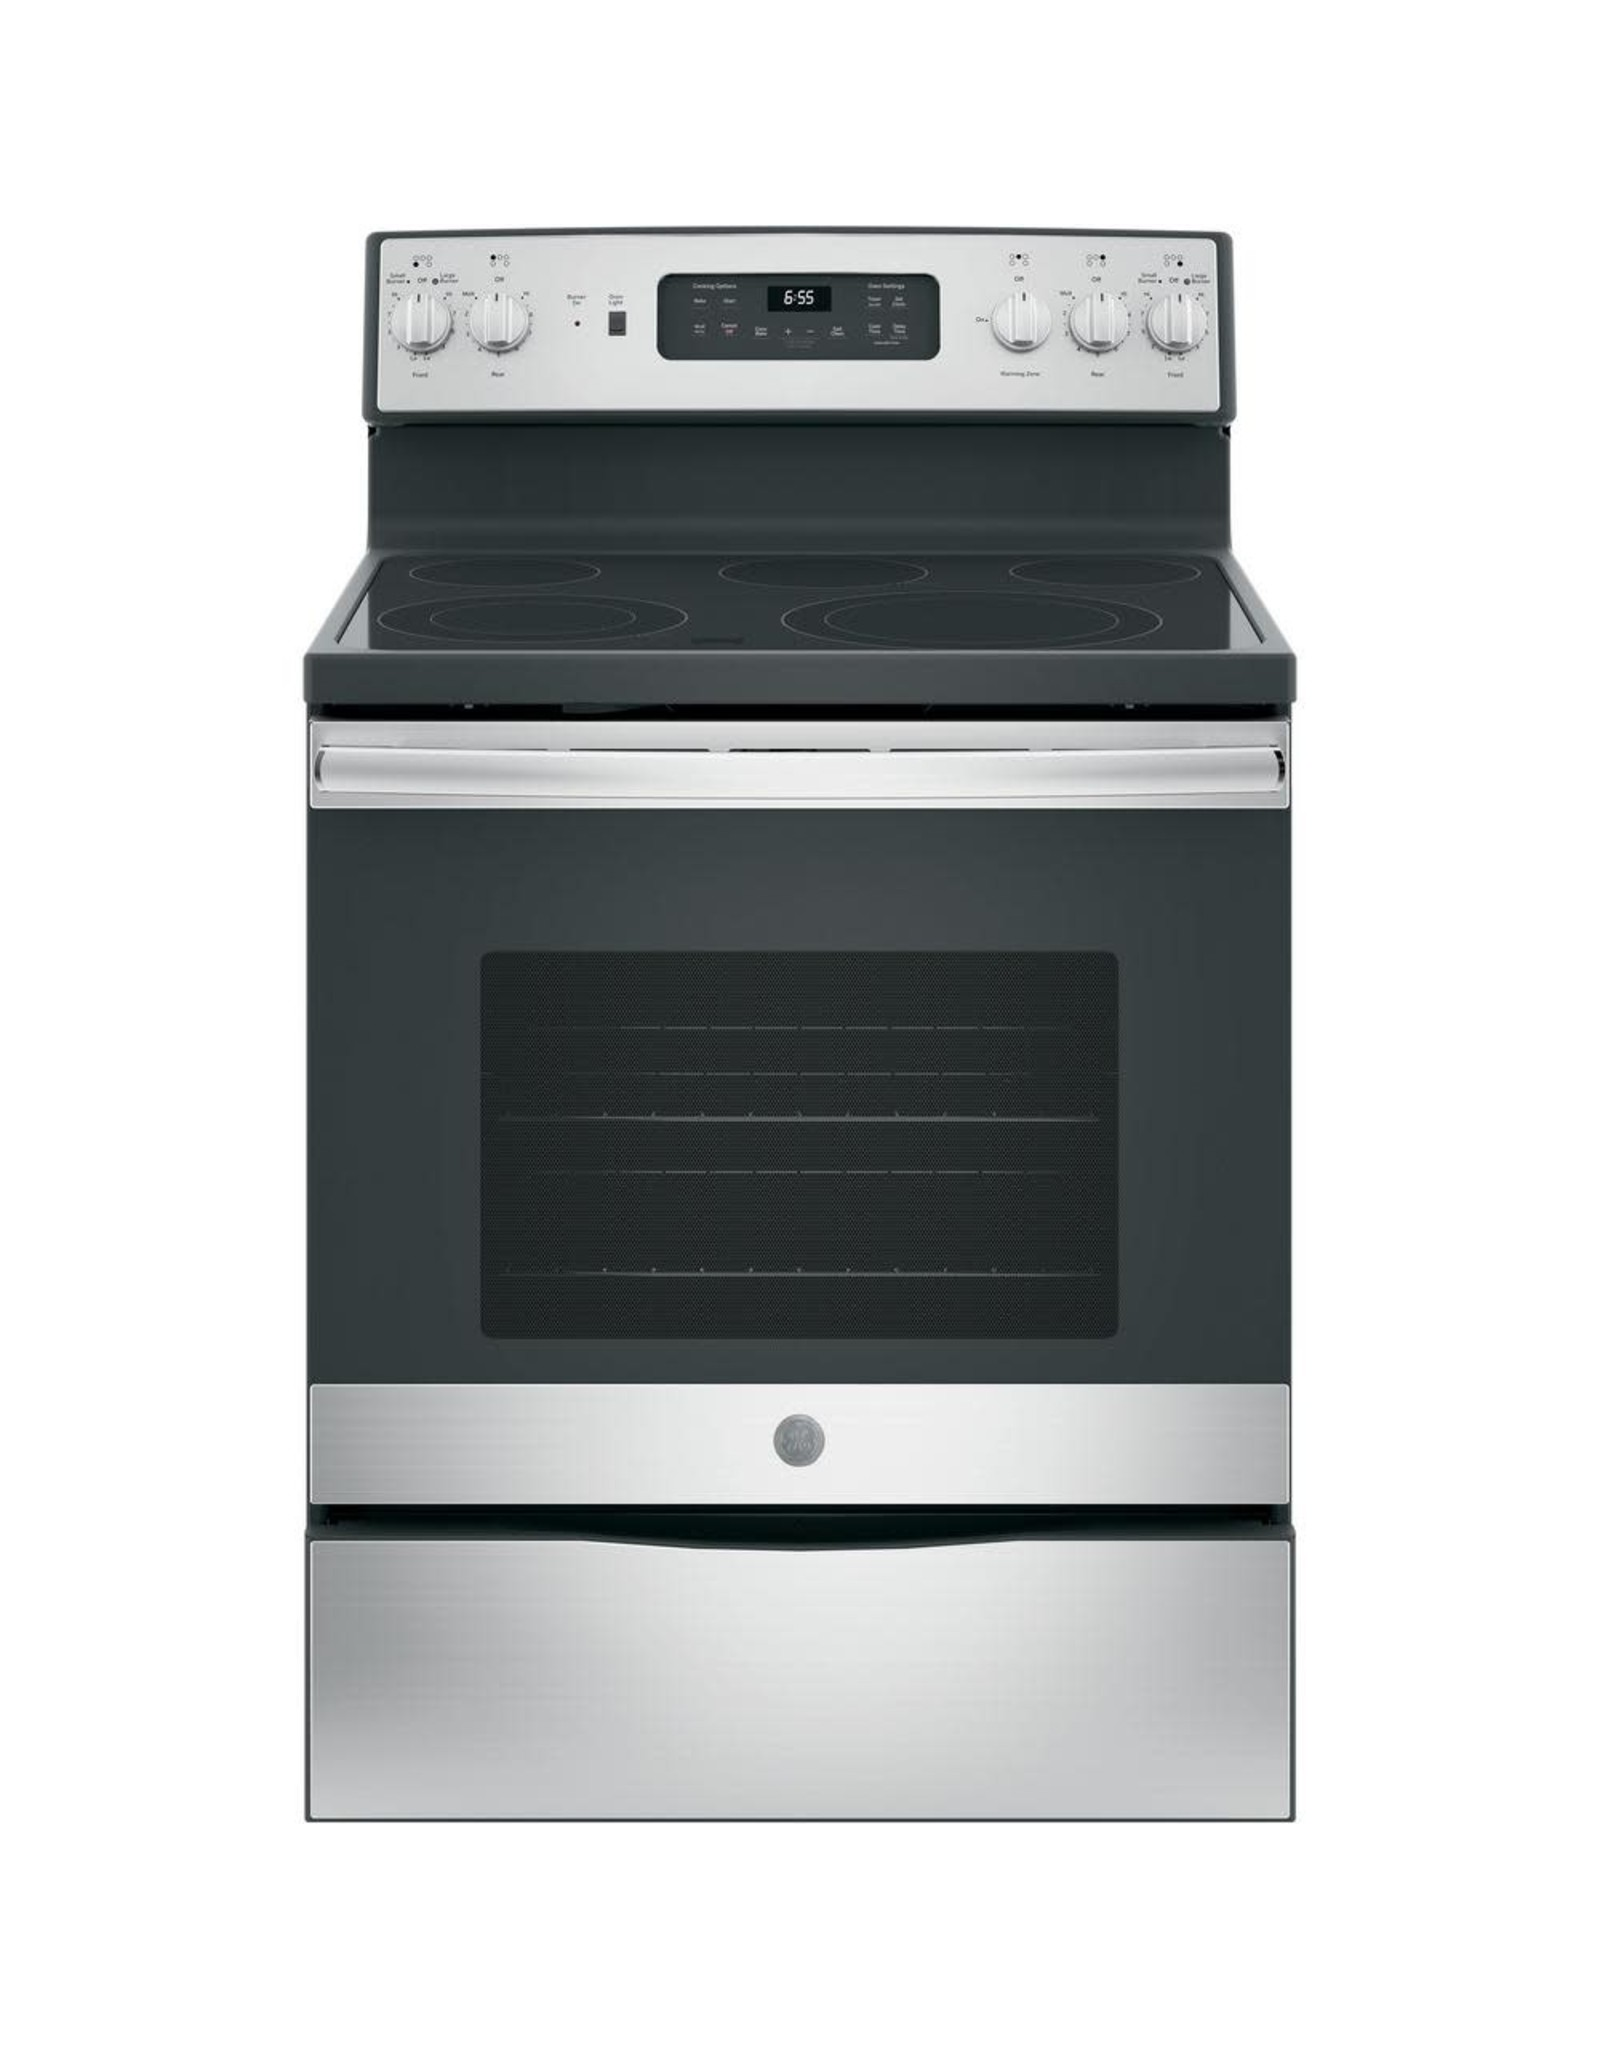 GE GB655SK4SS 30 in. 5.3 cu. ft. Electric Range with Self-Cleaning Convection Oven in Stainless Steel